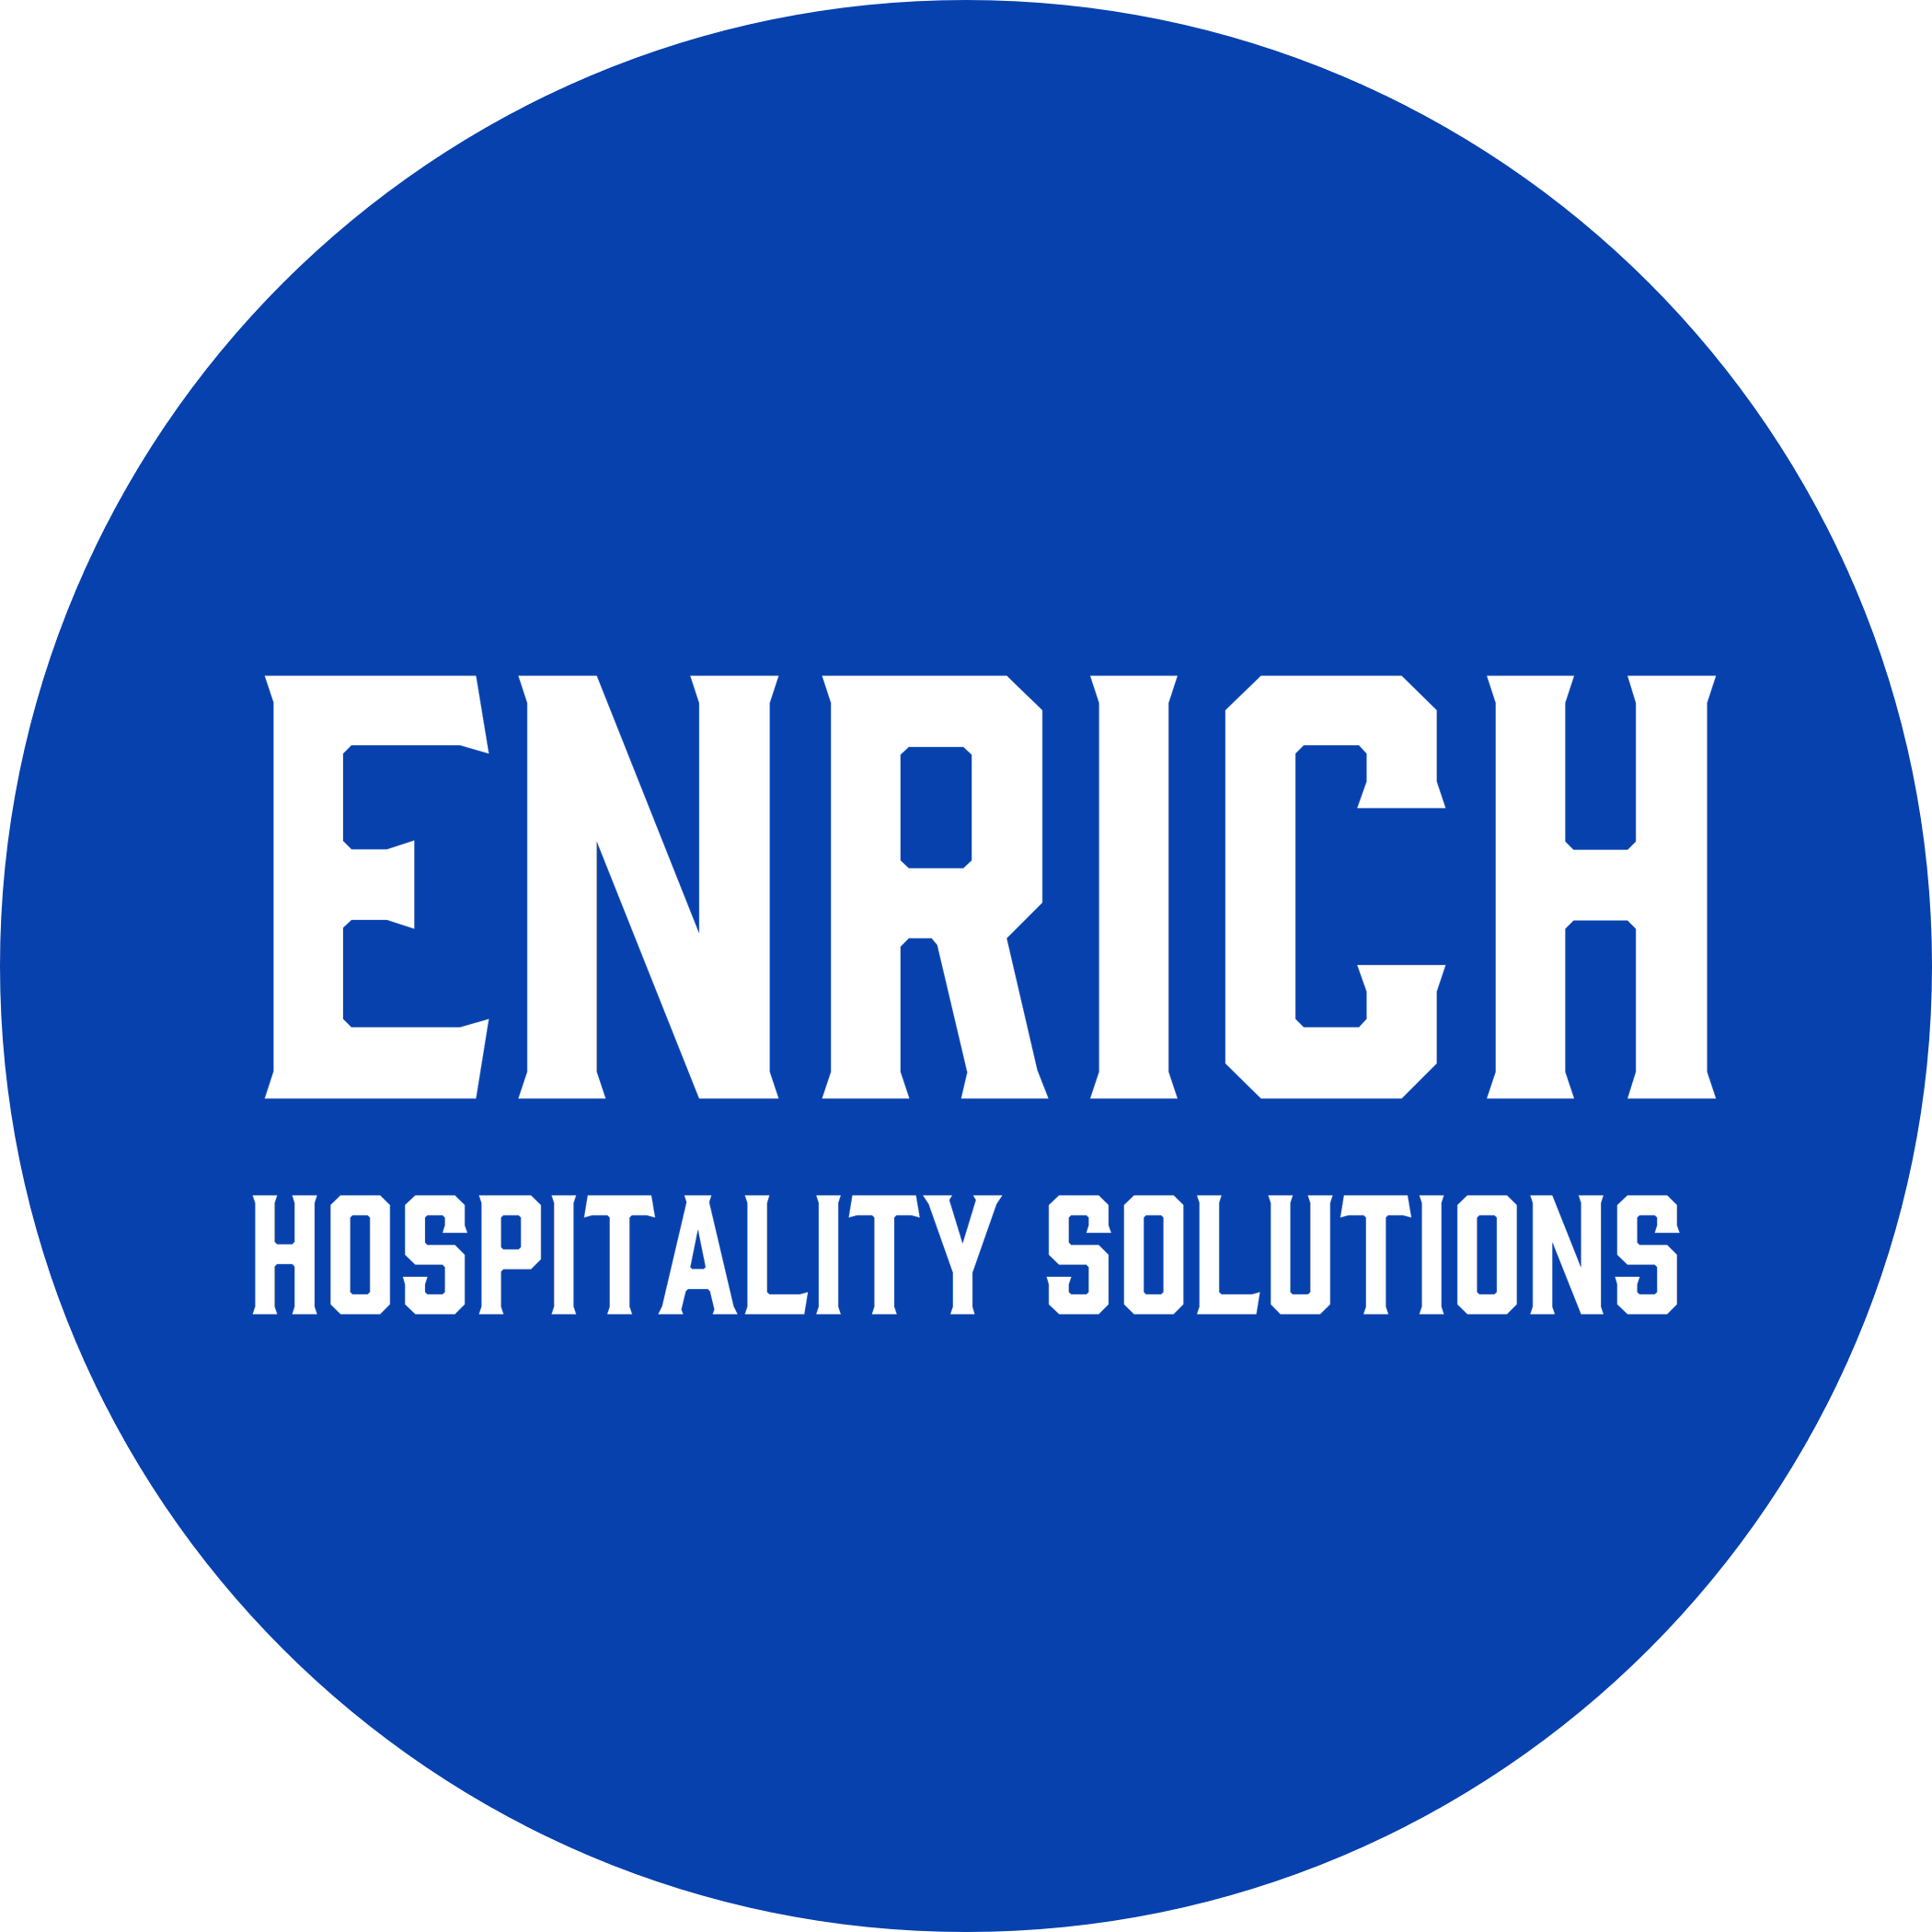 Enrich Hospitality Solutions